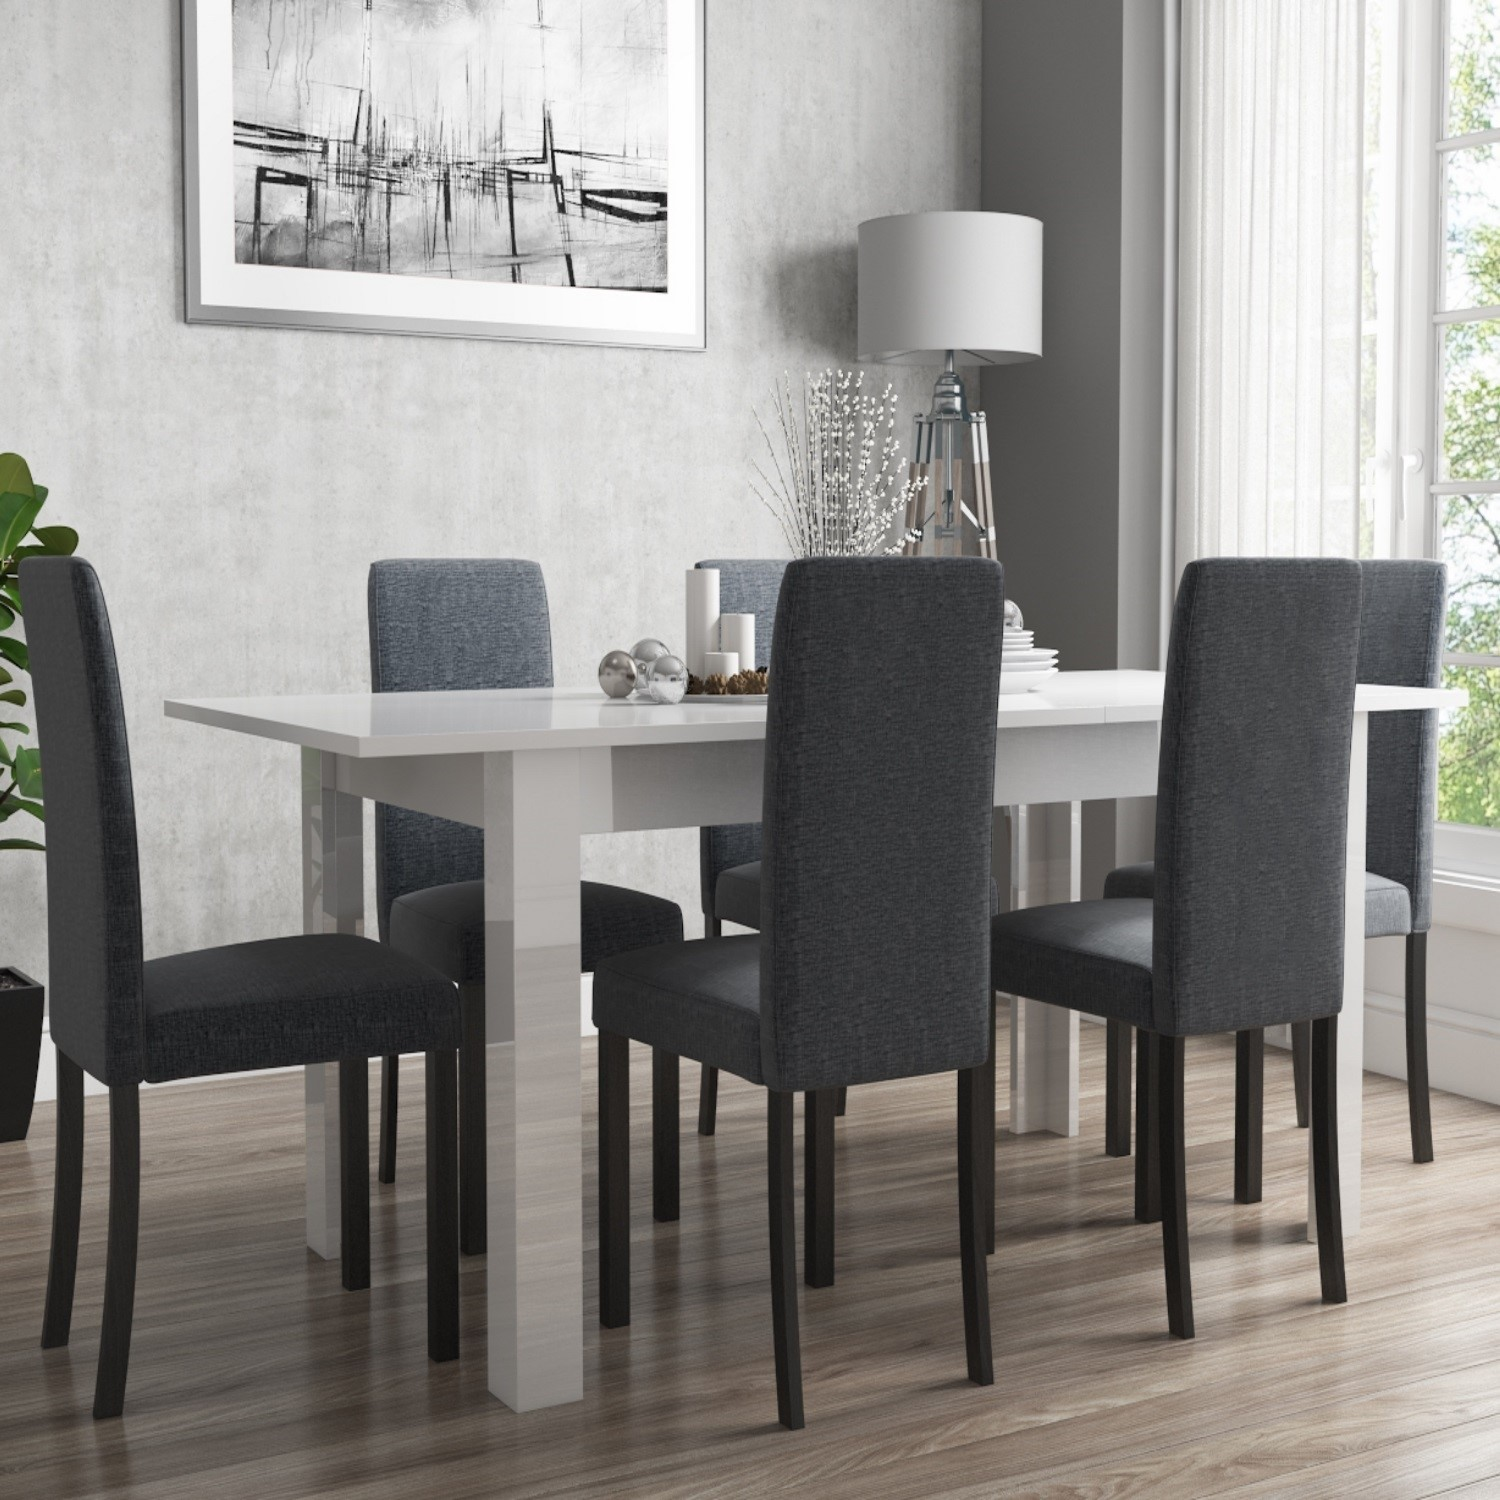 Remarkable Extendable Dining Table In White High Gloss With 6 Grey Chairs Black Legs Vivienne New Haven Ncnpc Chair Design For Home Ncnpcorg